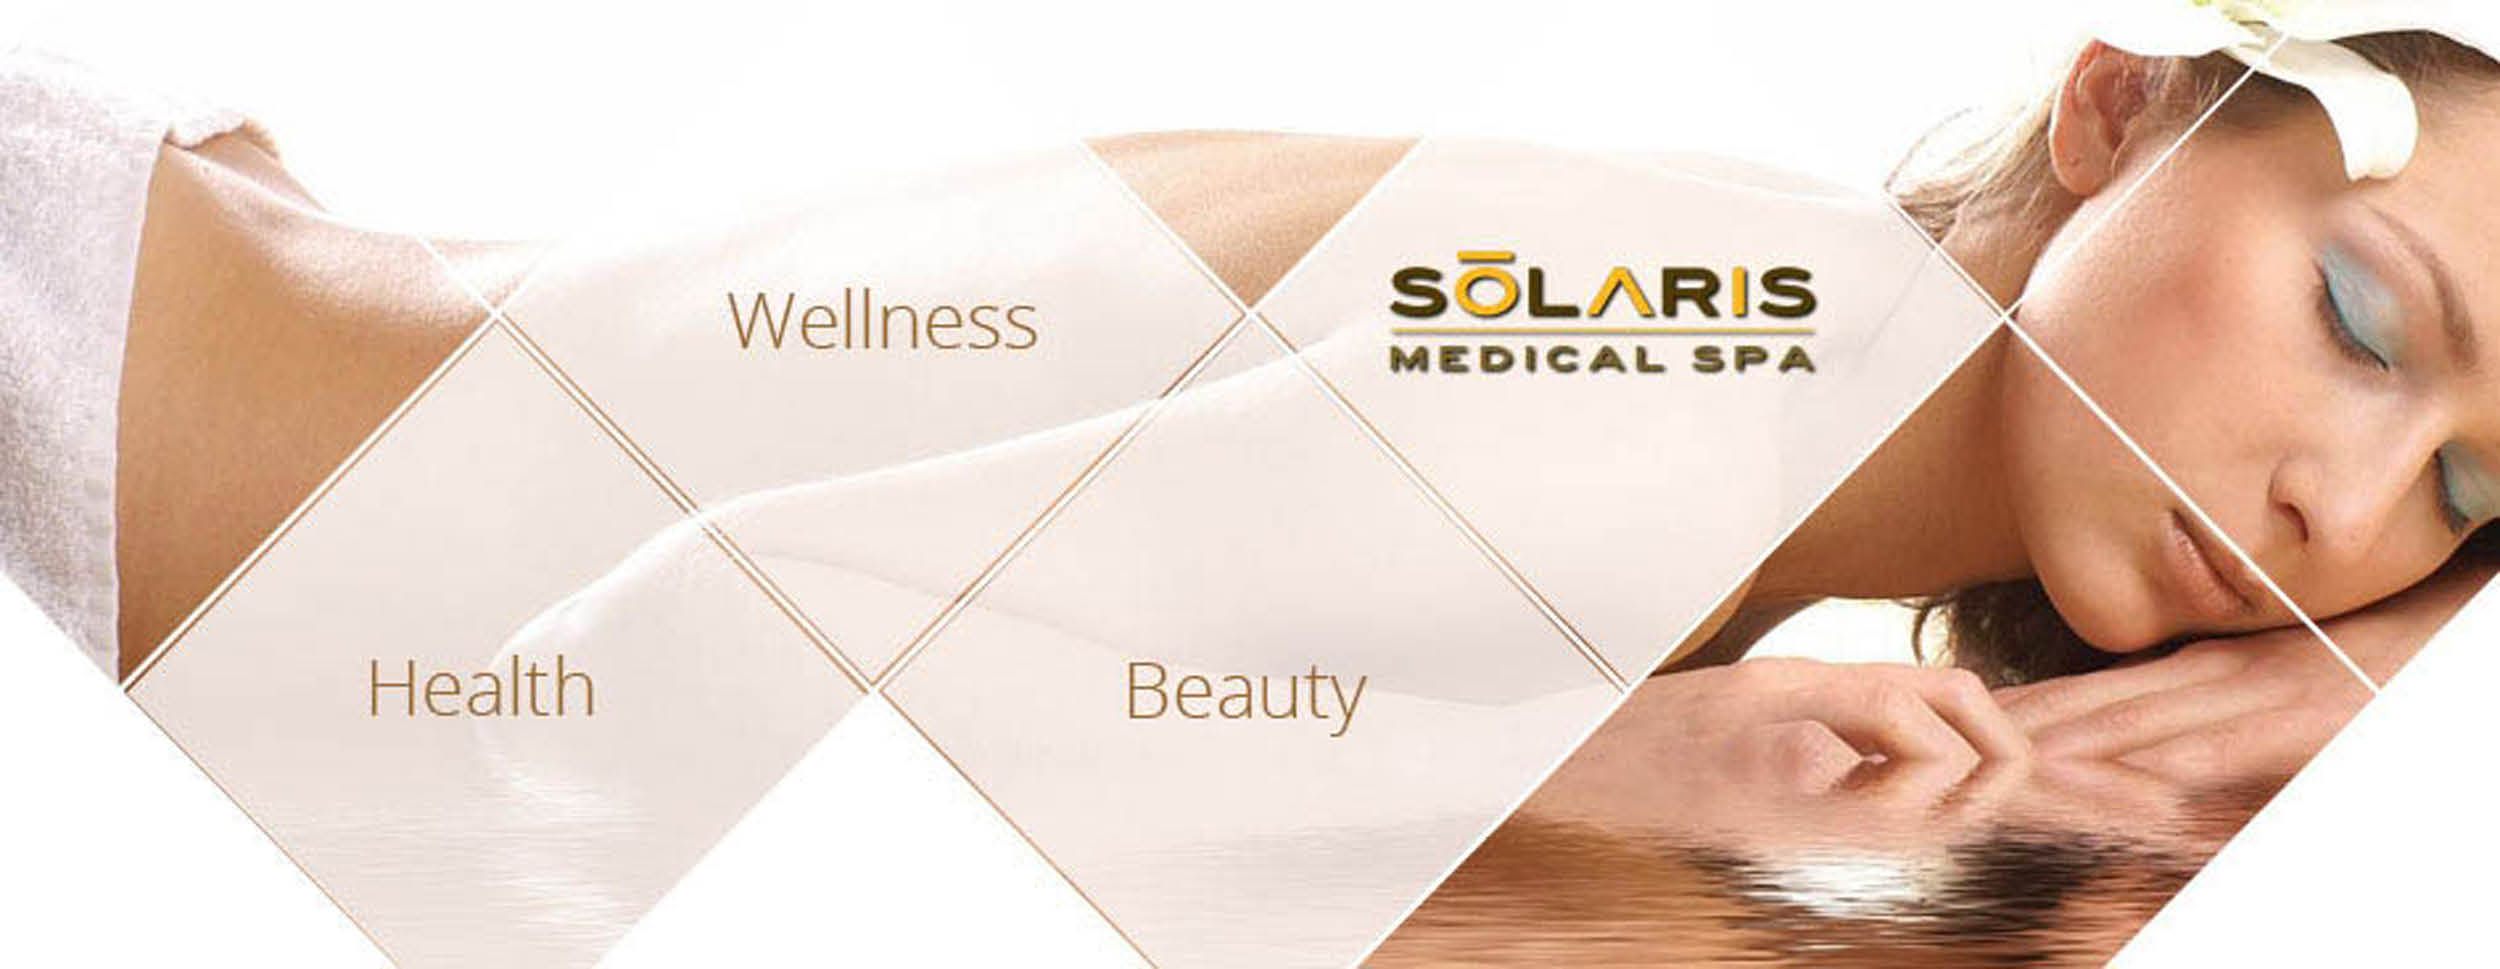 Solaris Medical Spa located near Germantown.WI helps with skin care, anti-aging and weight loss needs. Photo of a med spa patient.